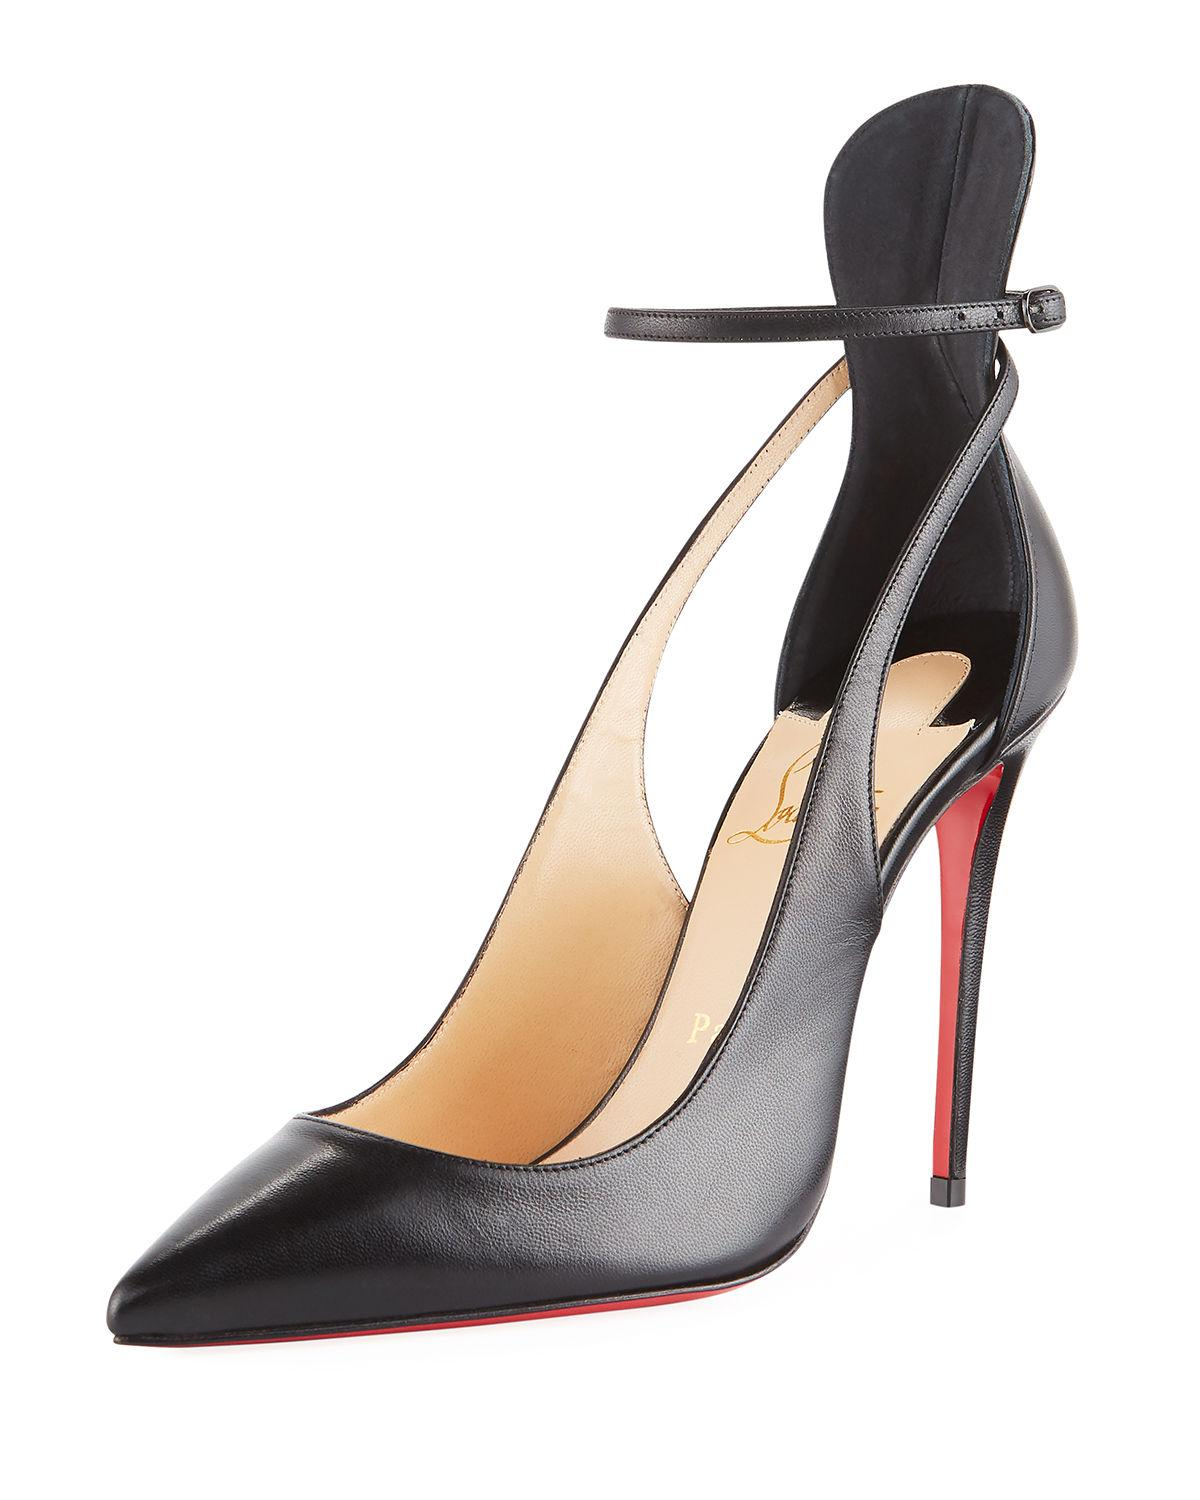 38c15f6a3806 Christian Louboutin Mascara 100Mm Leather Red Sole Pump In Black ...